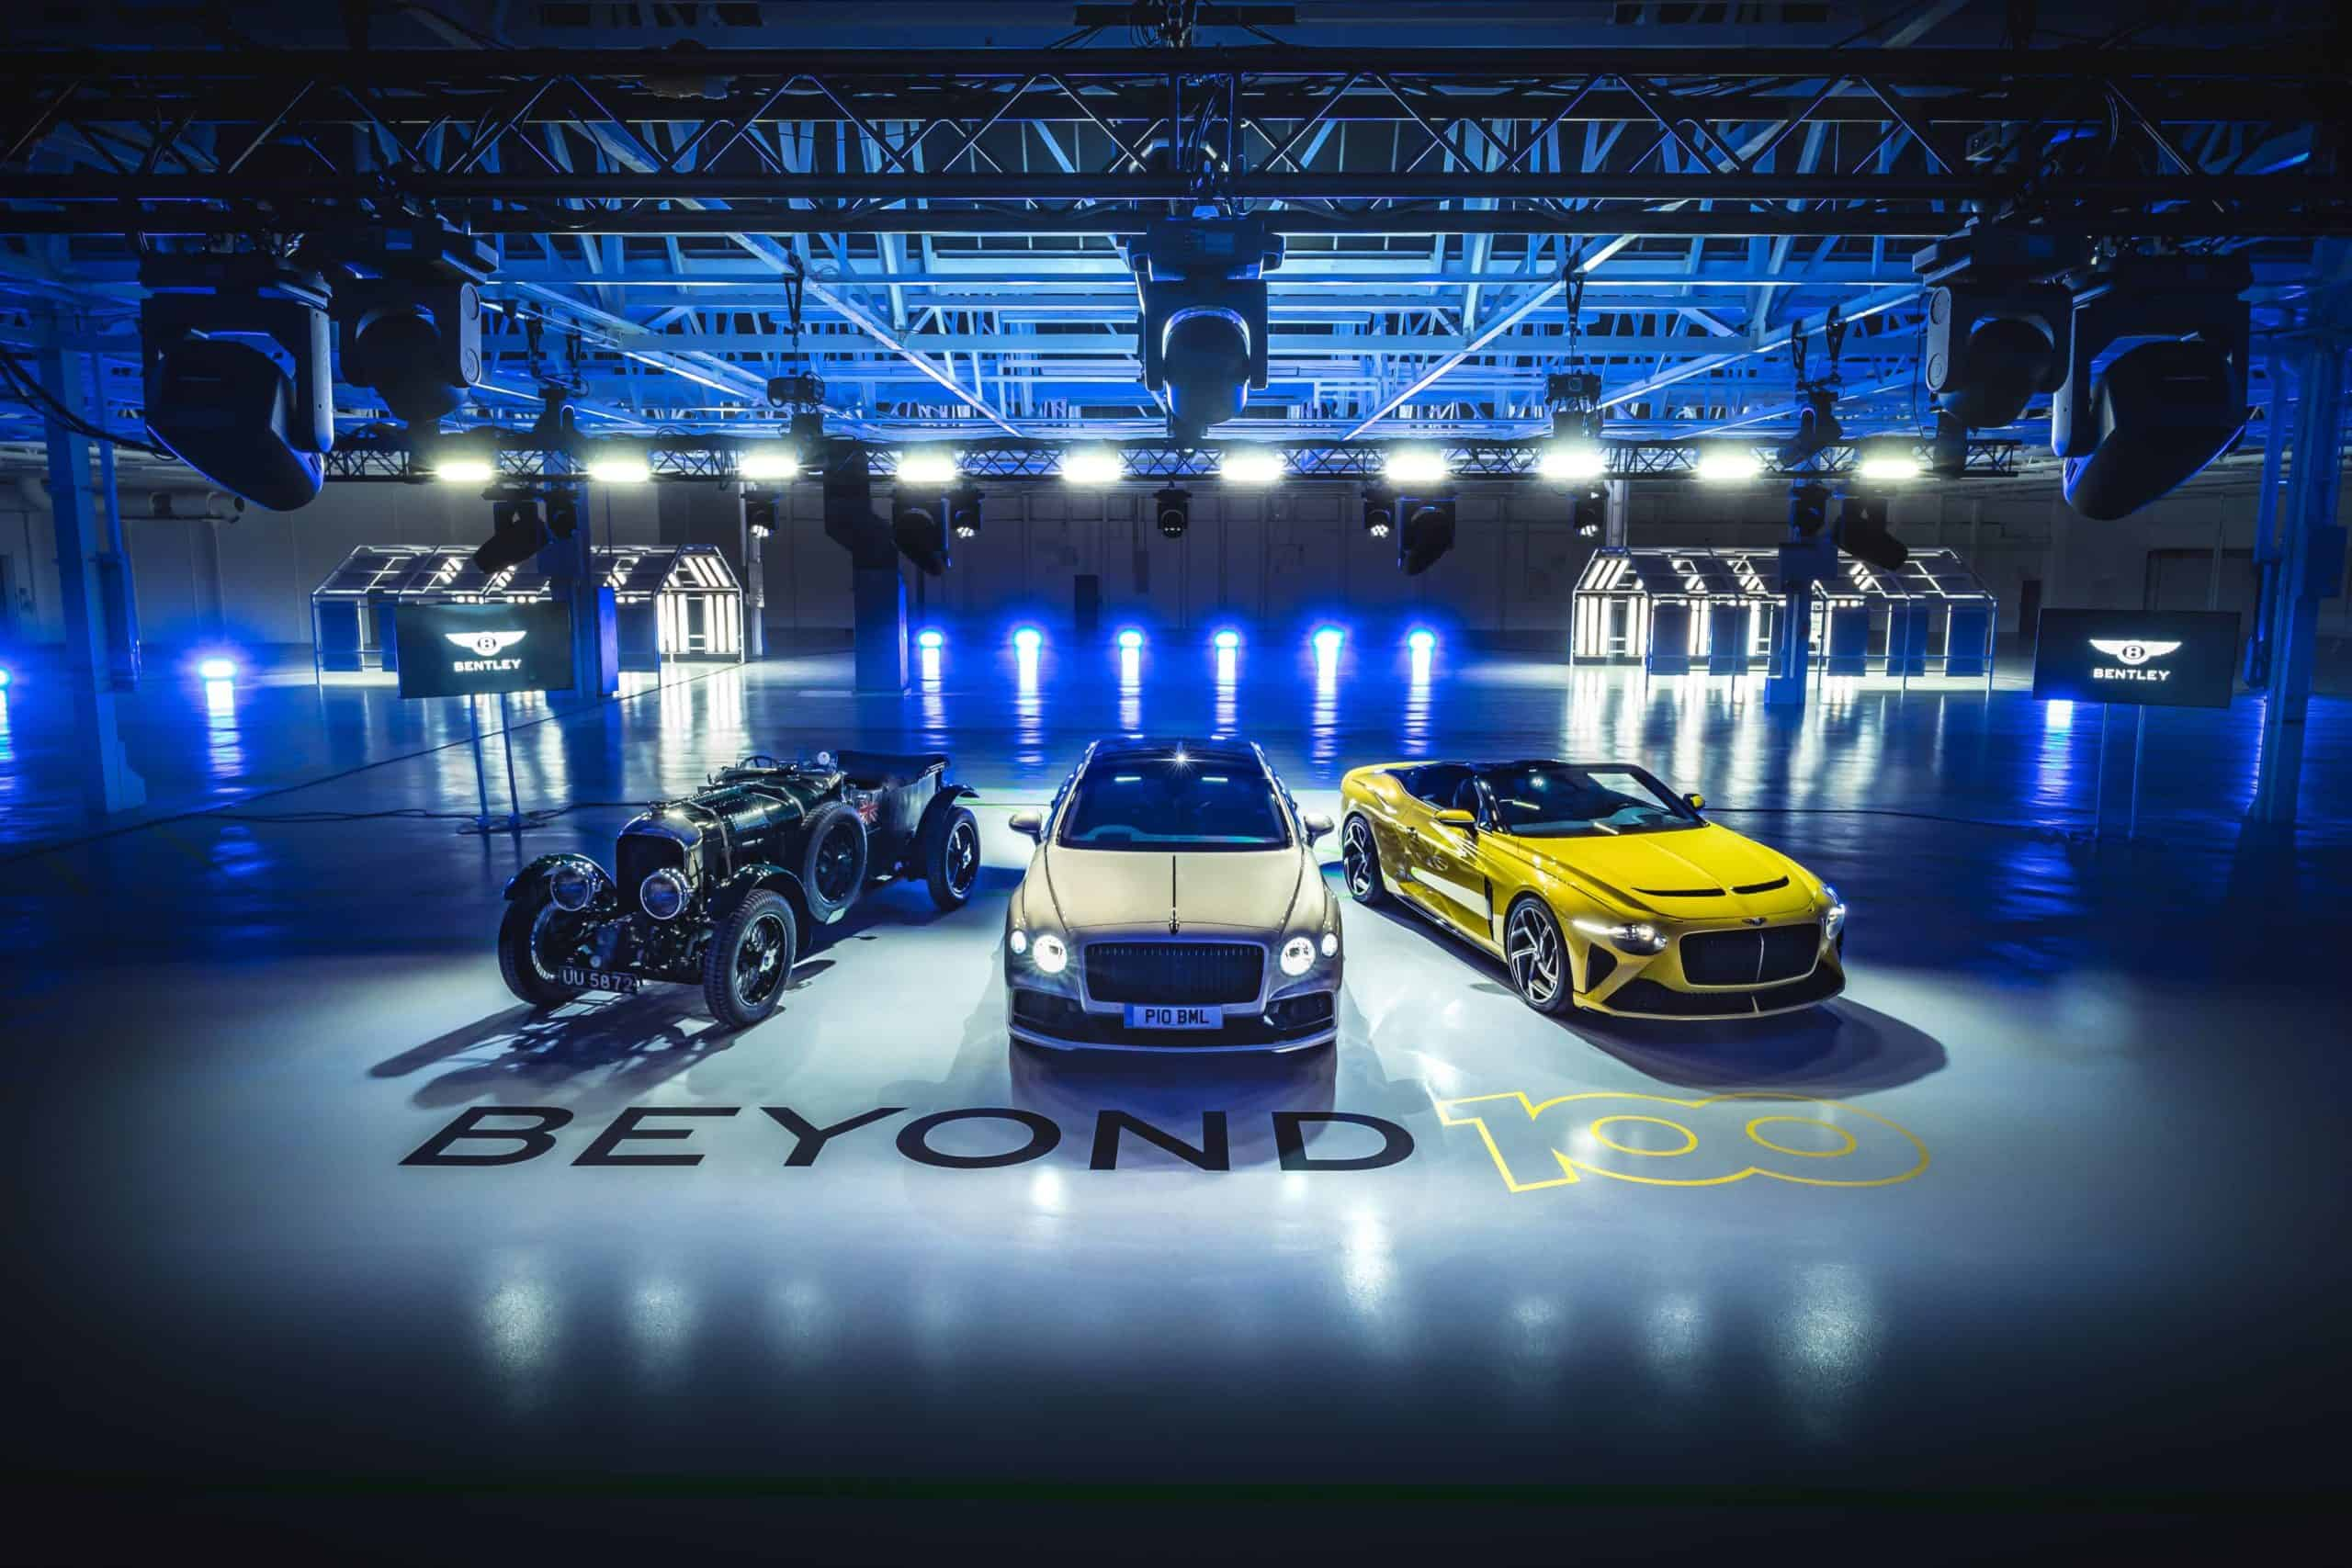 Bentley outlines their Beyond 100 strategy